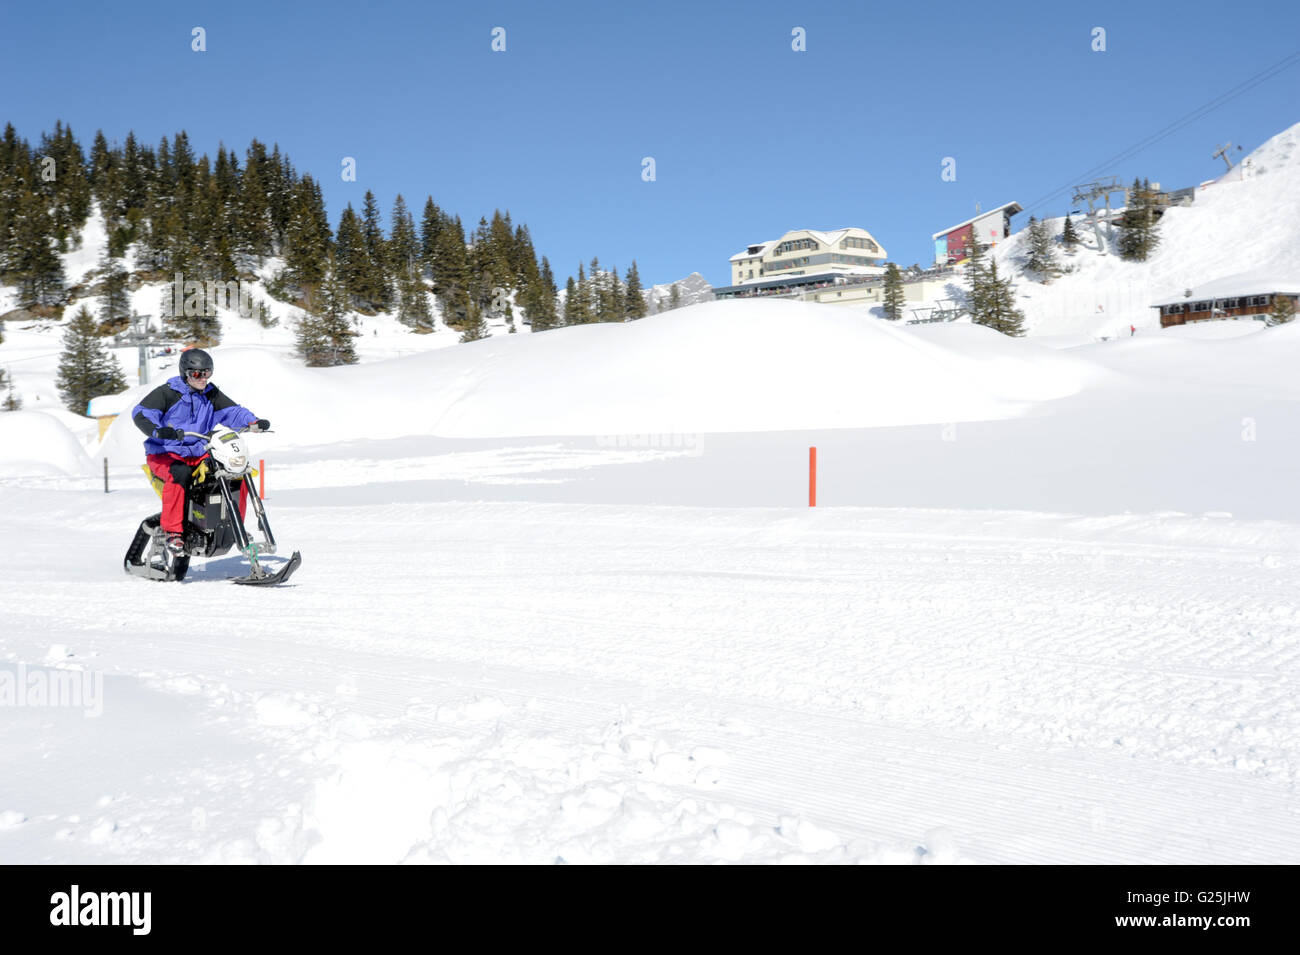 Engelberg, Switzerland - 7 March 2014: Men on snowmobile at Engelberg on the Swiss alps - Stock Image